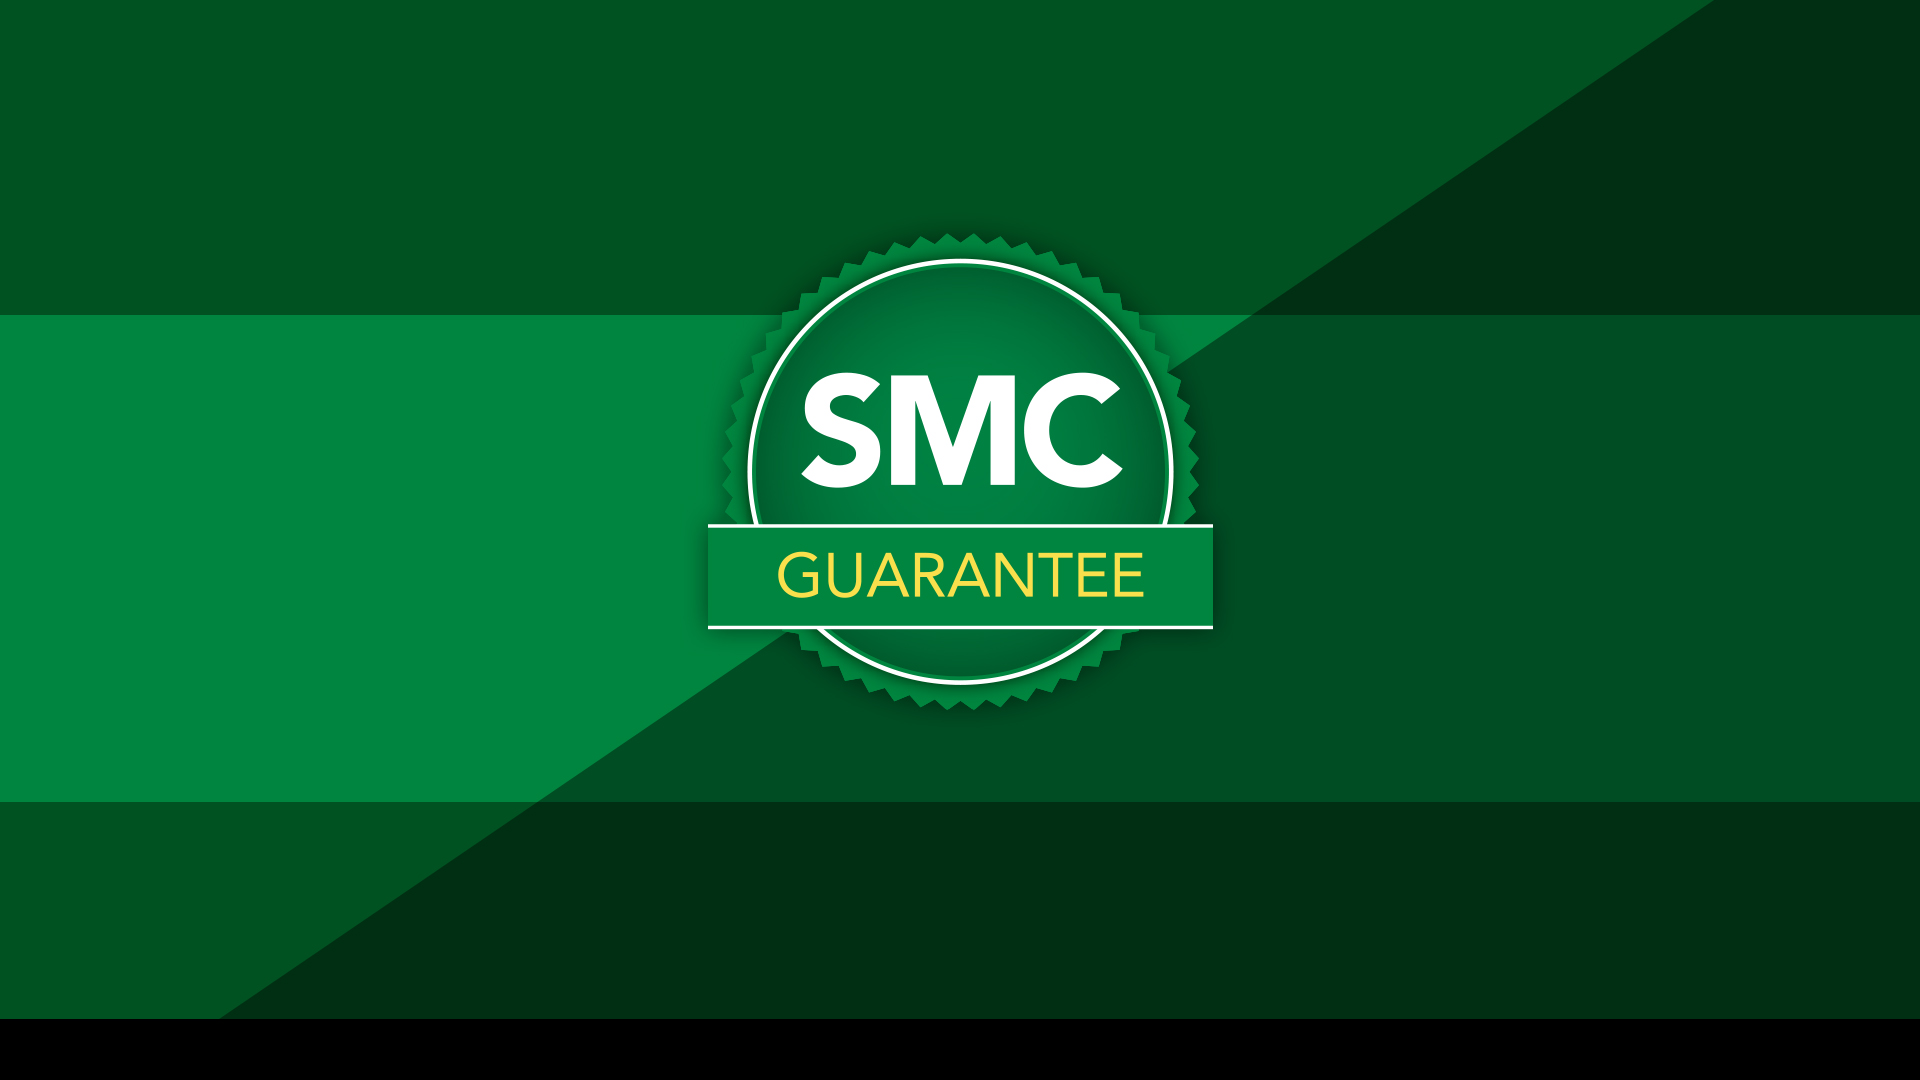 Graphic for SMC Guarentee